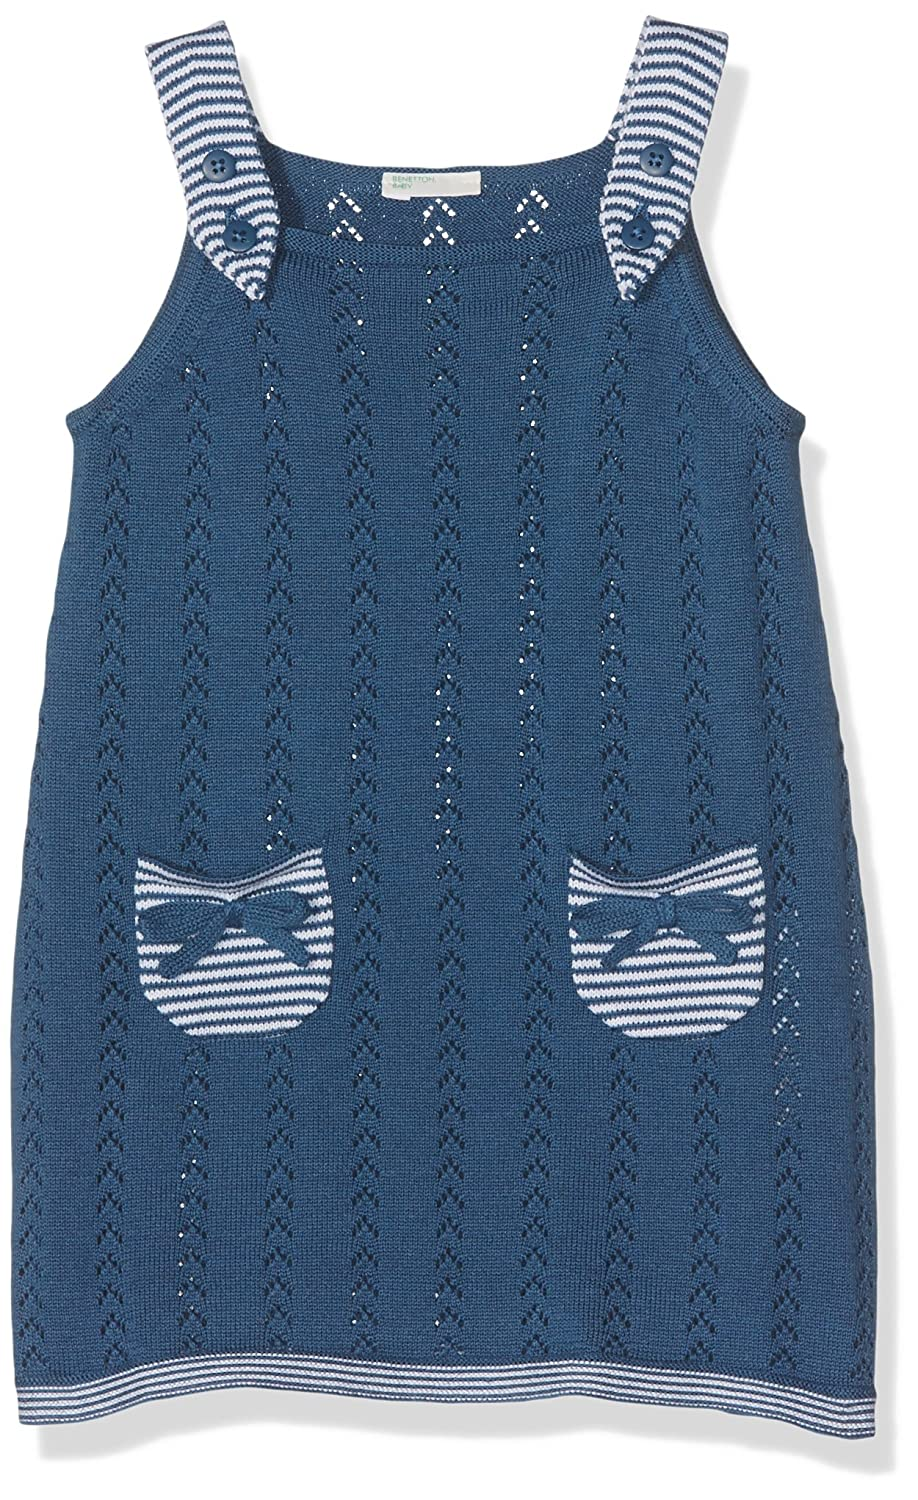 United Colors of Benetton Baby-Mädchen Overall Skirt Dungaree 10C1F803N